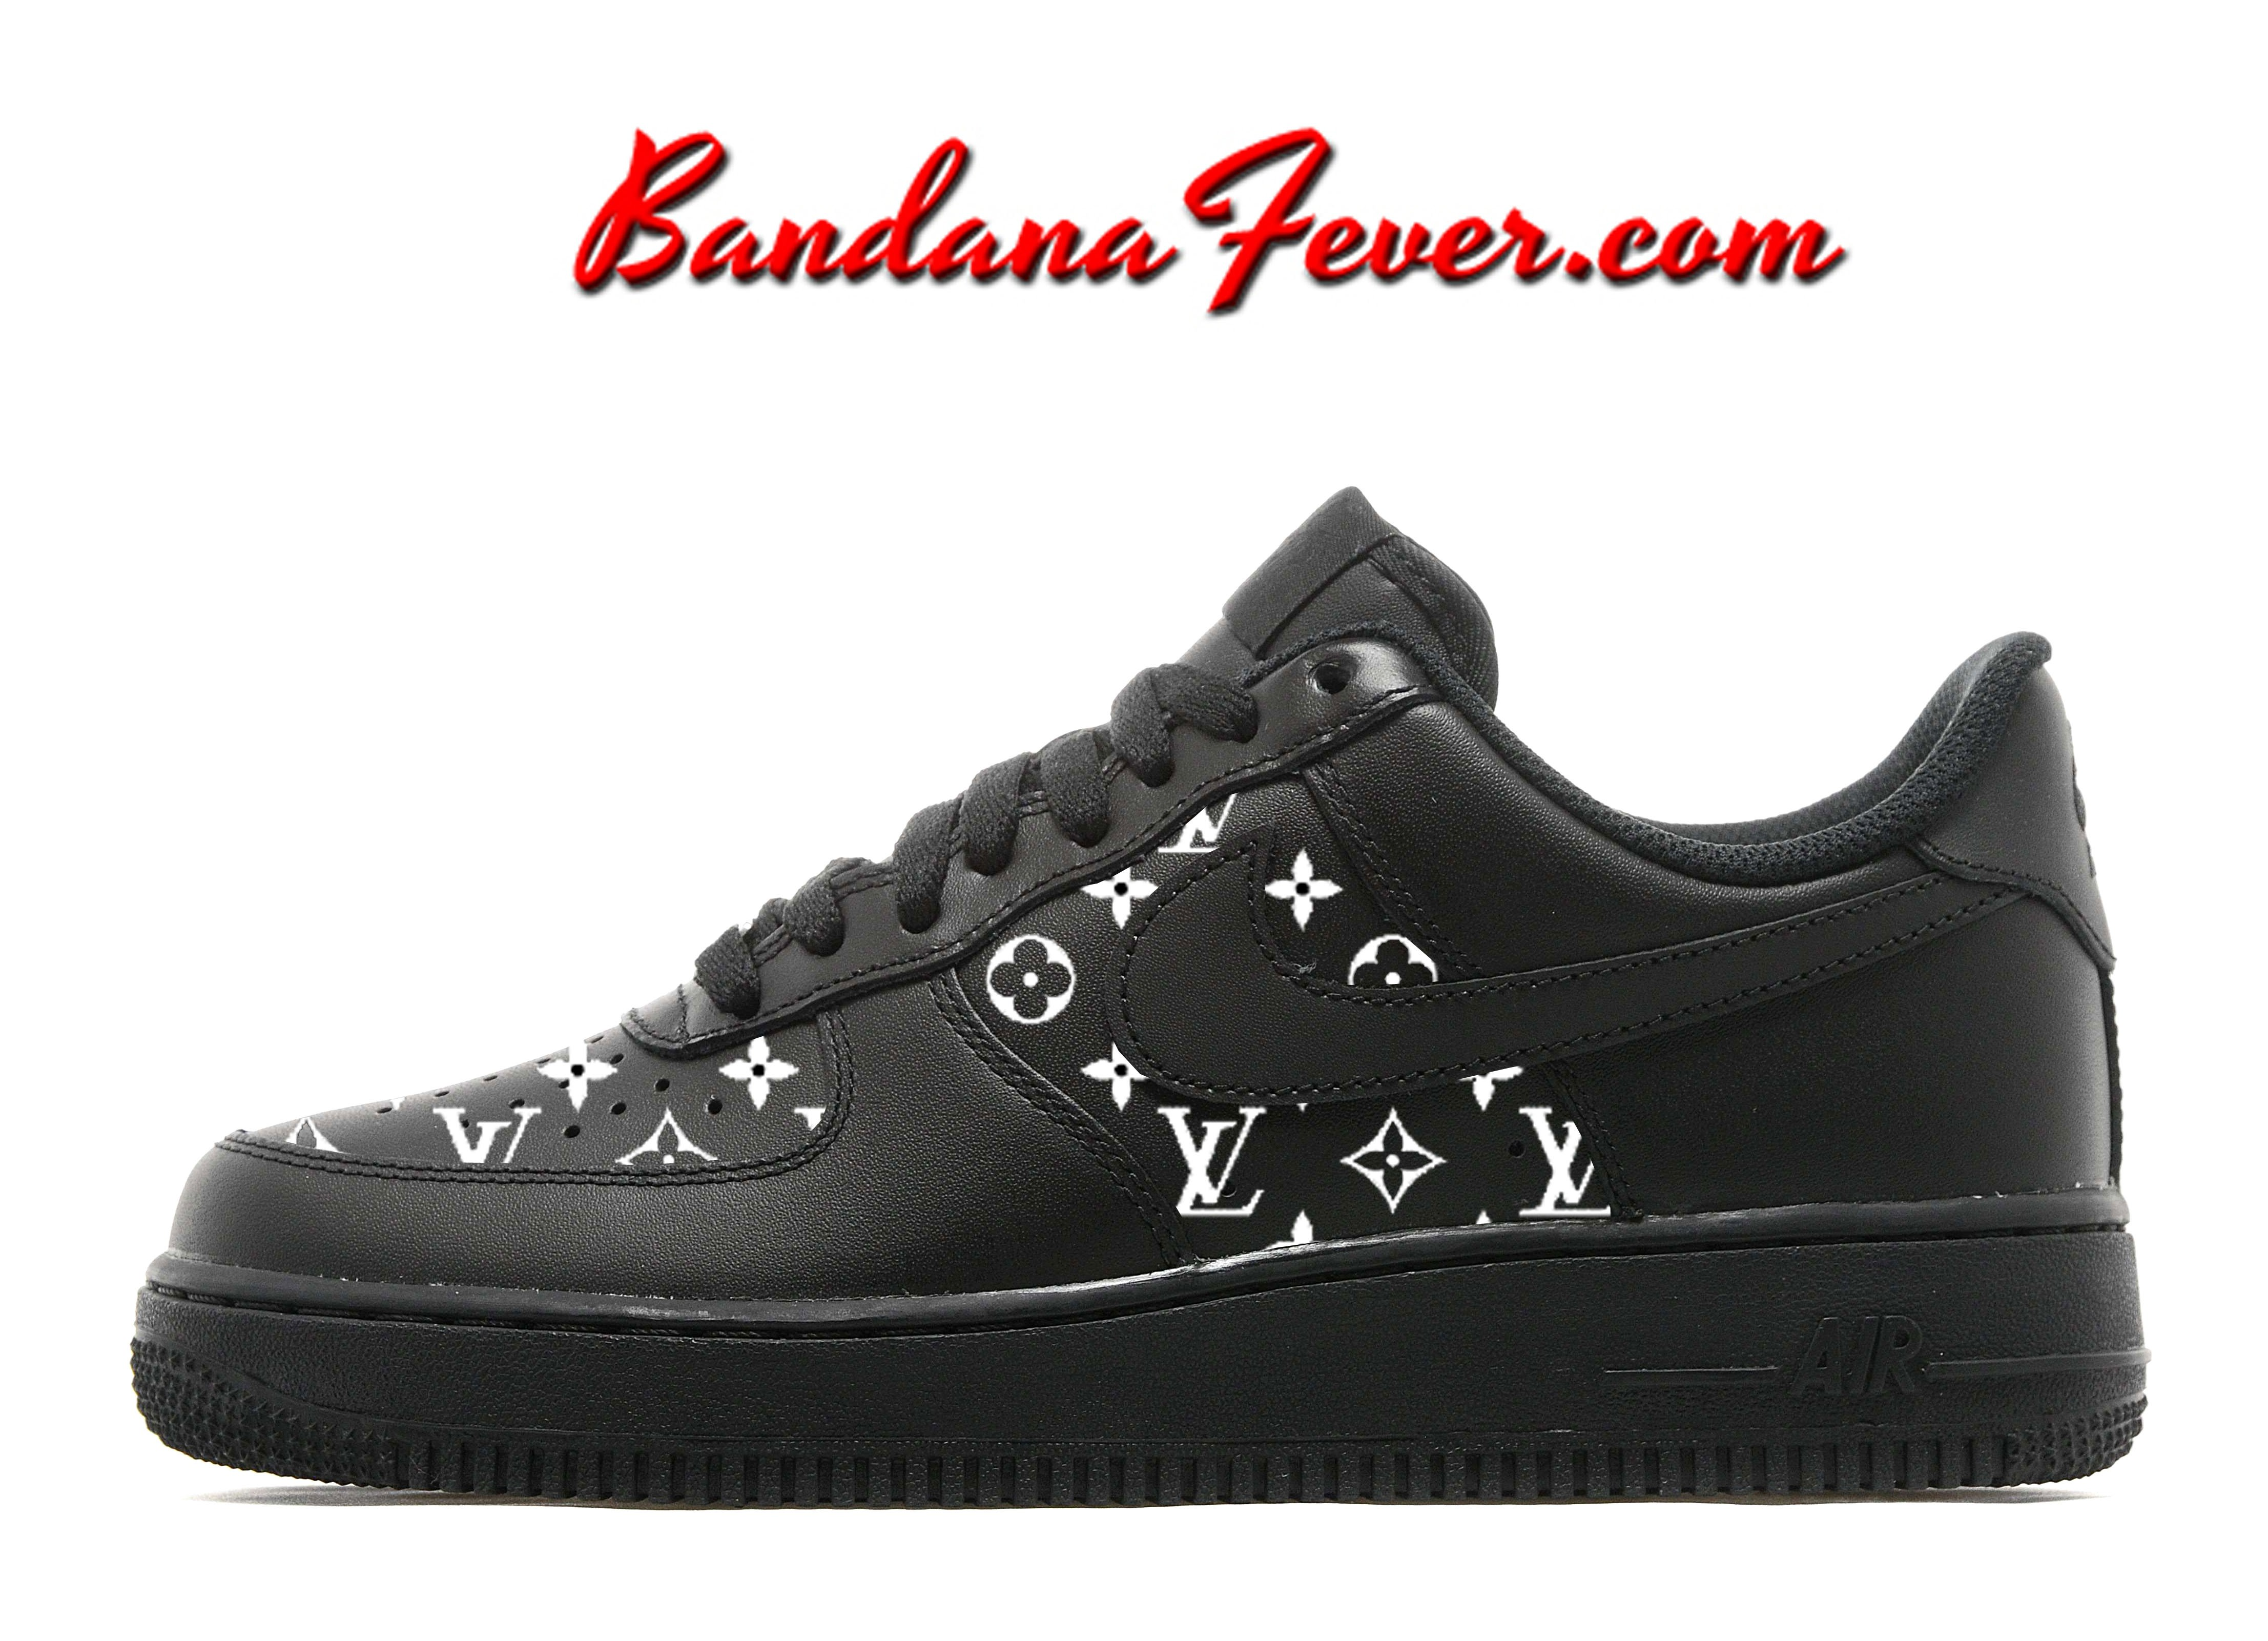 huge discount c9cf7 2c353 Custom Supreme White Monogram Nike Air Force 1 Shoes Black Low,  fashion   supremelv by Bandana Fever